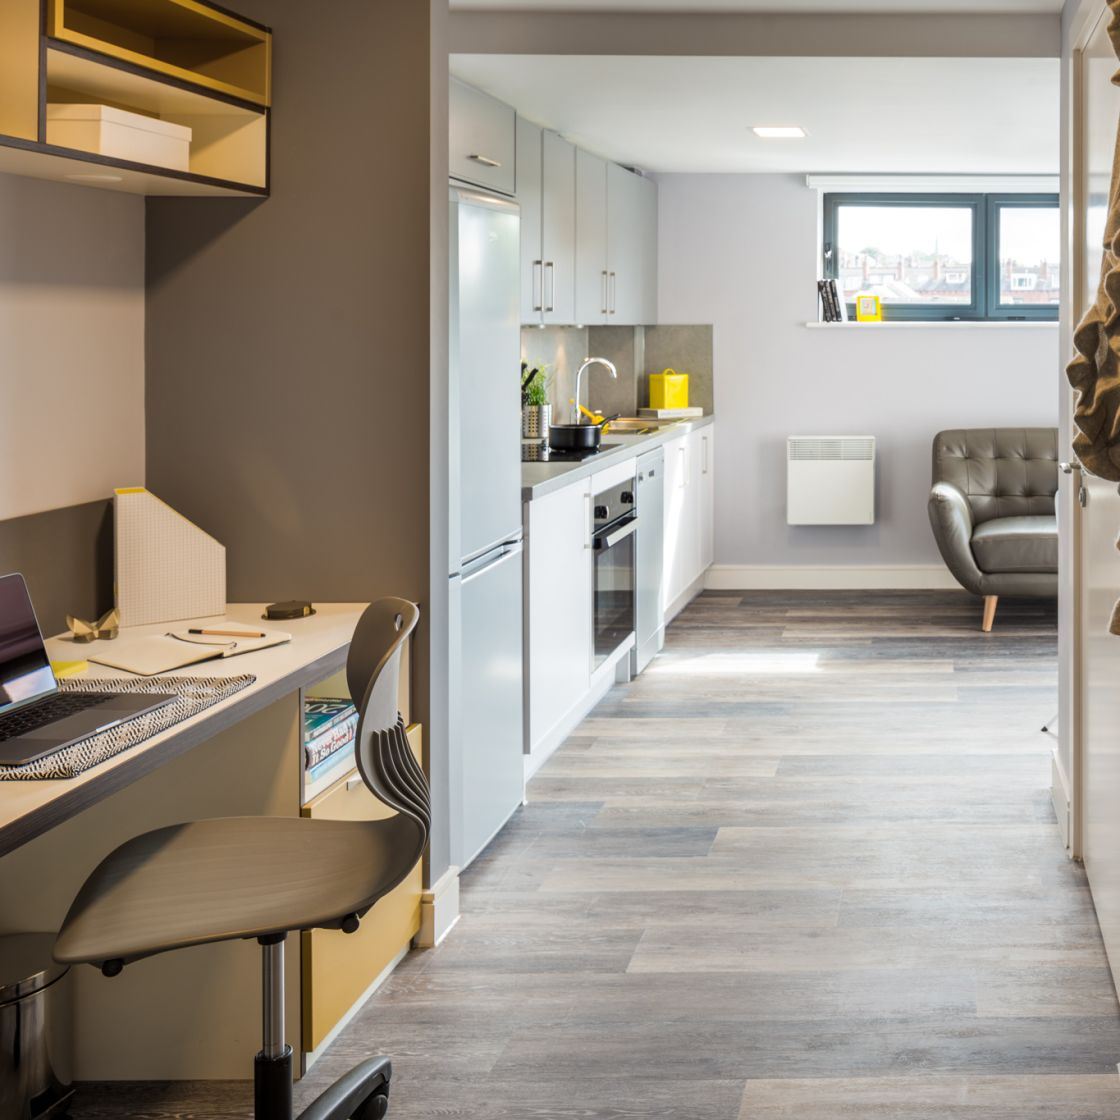 Grande studio apartment in Leeds with separate living and study area. IconInc, The Glassworks